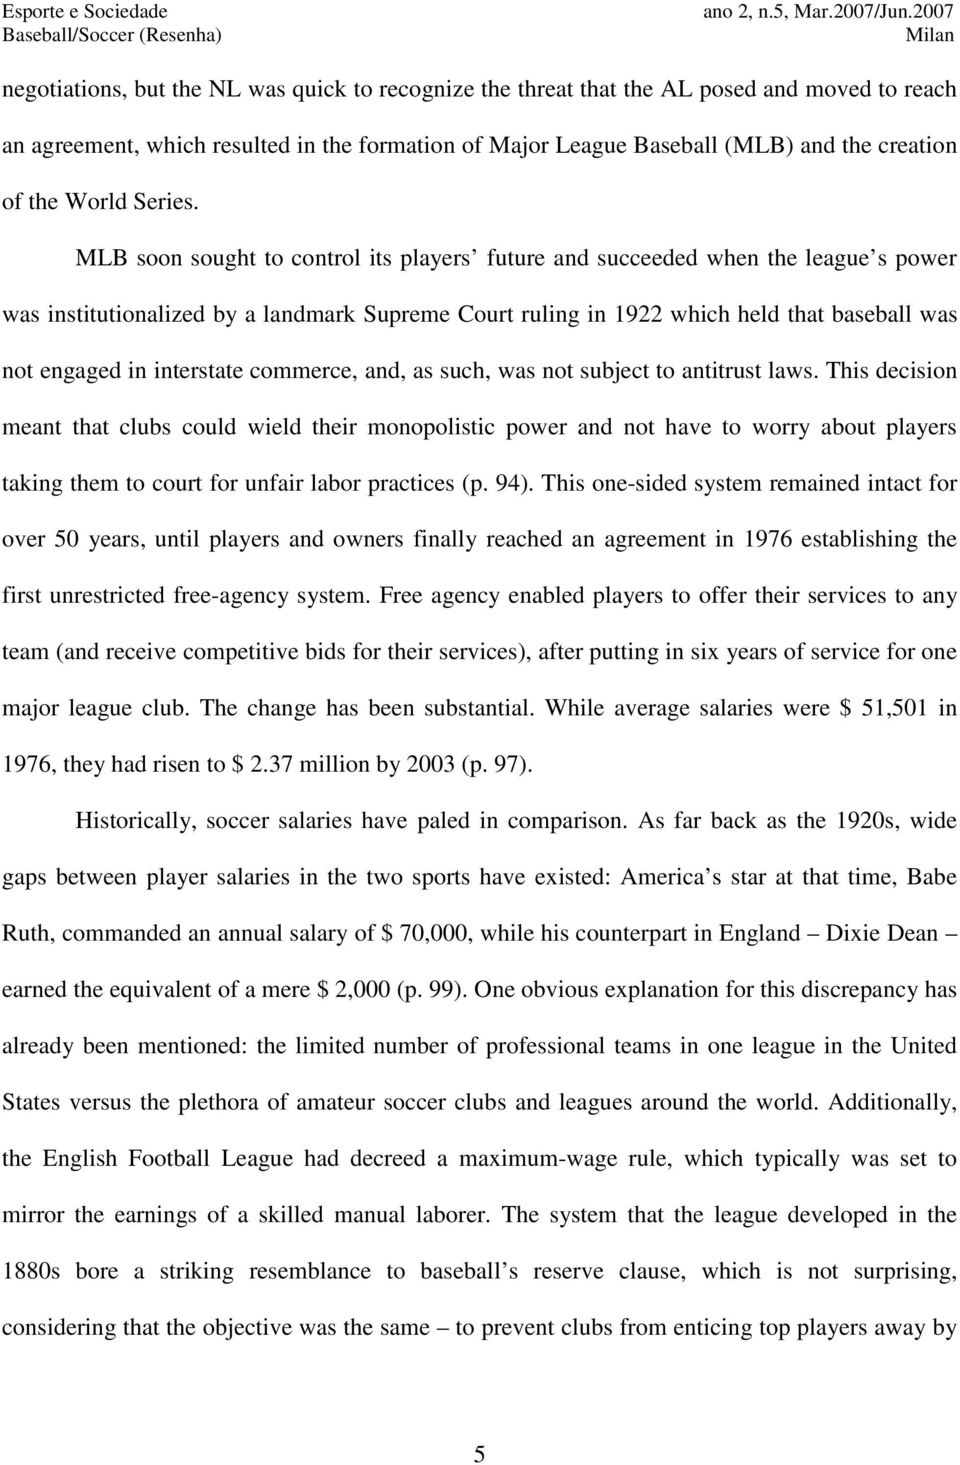 MLB soon sought to control its players future and succeeded when the league s power was institutionalized by a landmark Supreme Court ruling in 1922 which held that baseball was not engaged in